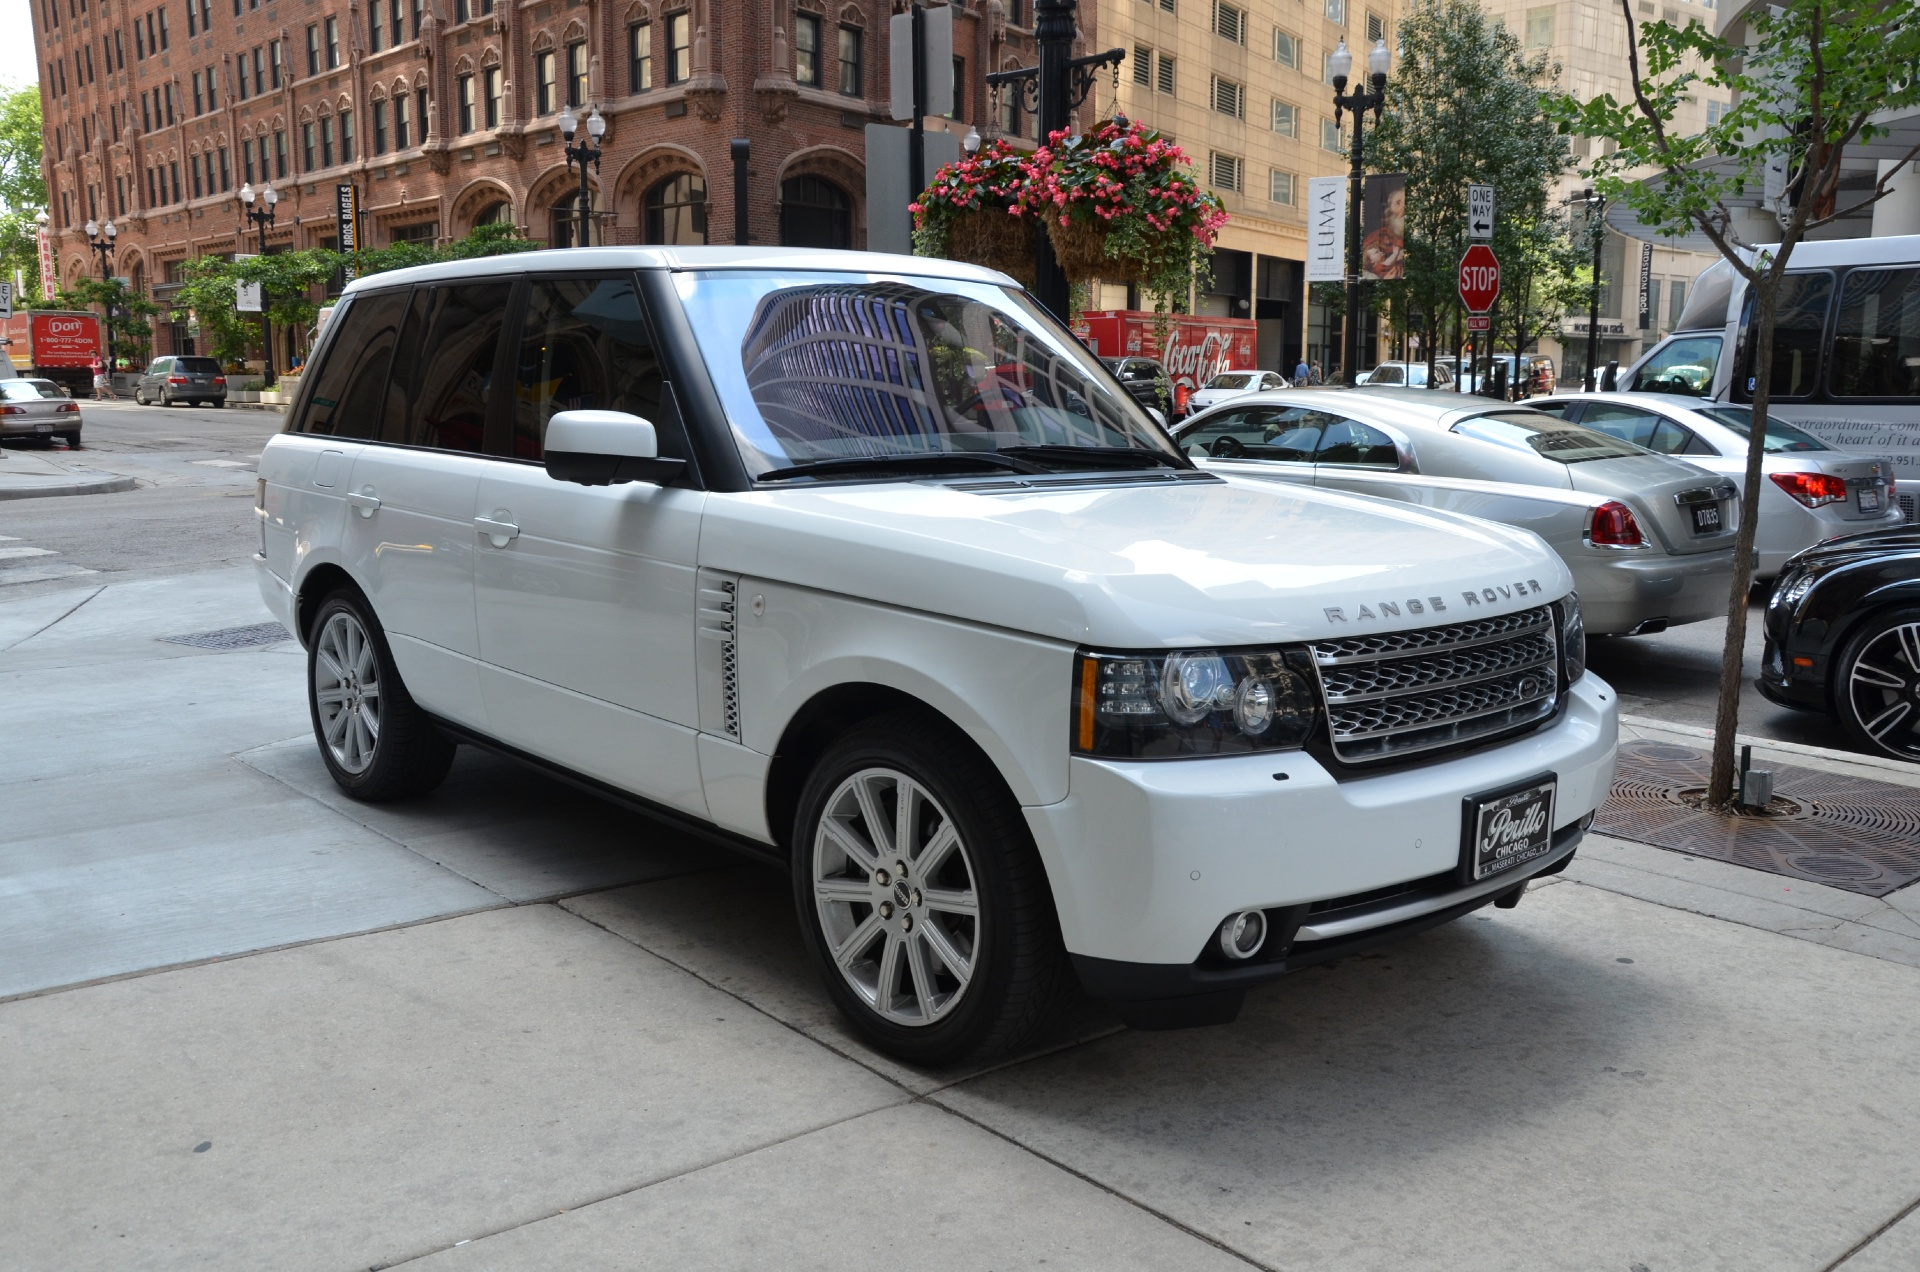 2012 Land Rover Range Rover Supercharged Stock GC1749 for sale